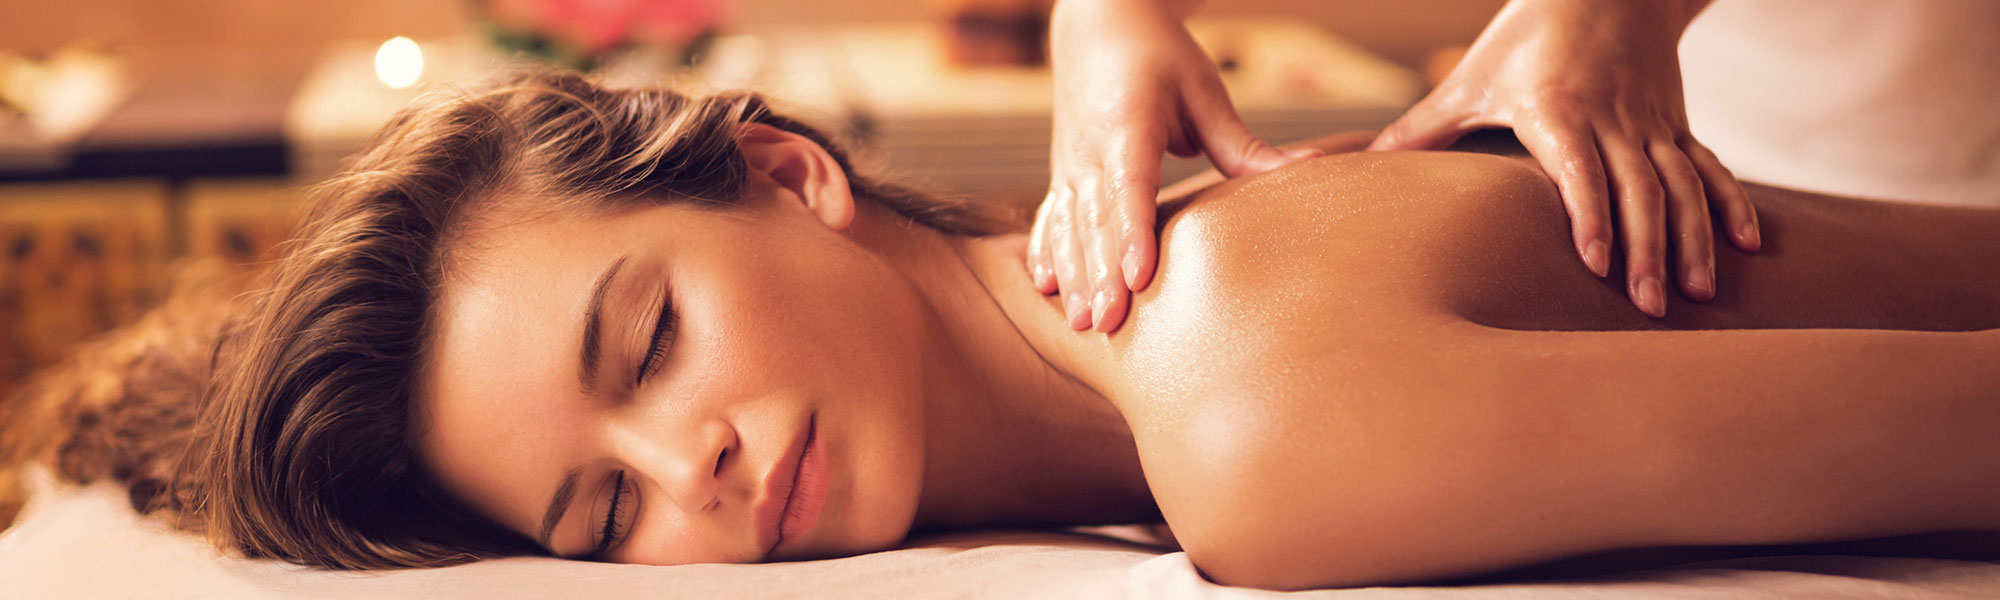 Spa Indulgence Package at California Hotel